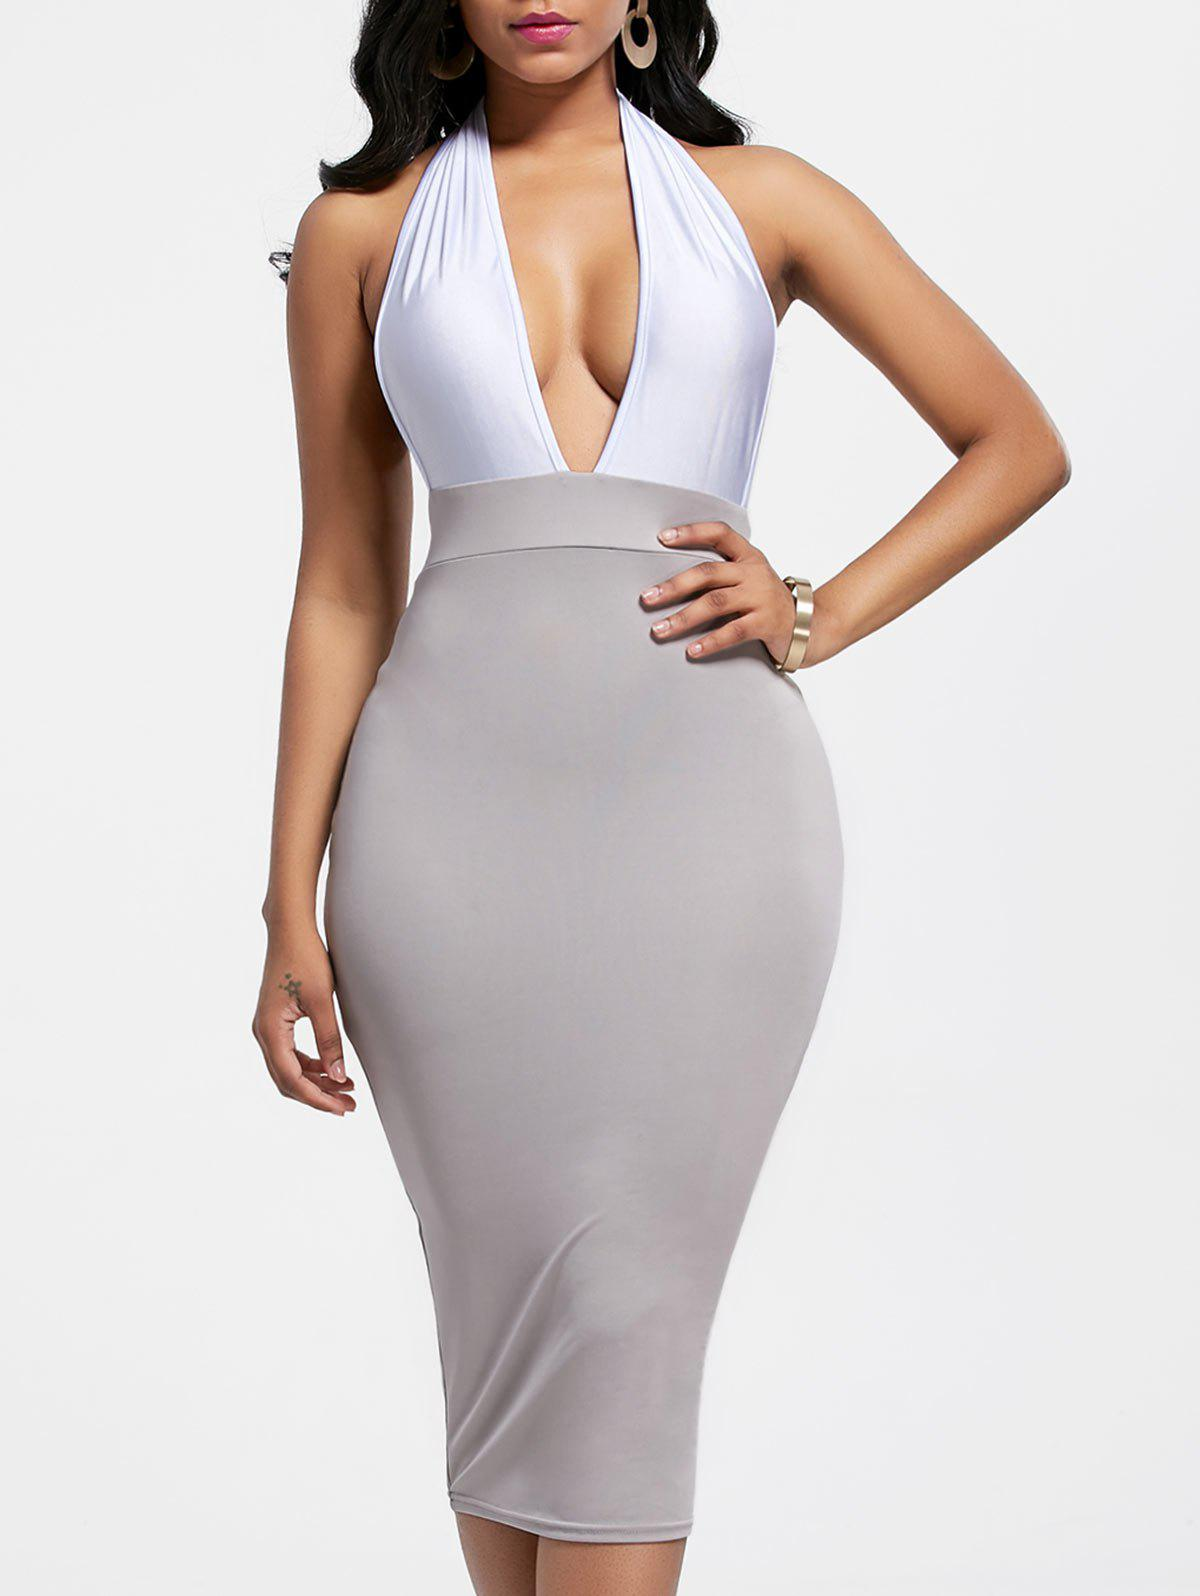 a85ccf2d4567 Trendy Sexy Plunging Neck Sleeveless Color Block Bodycon Women's Club Dress